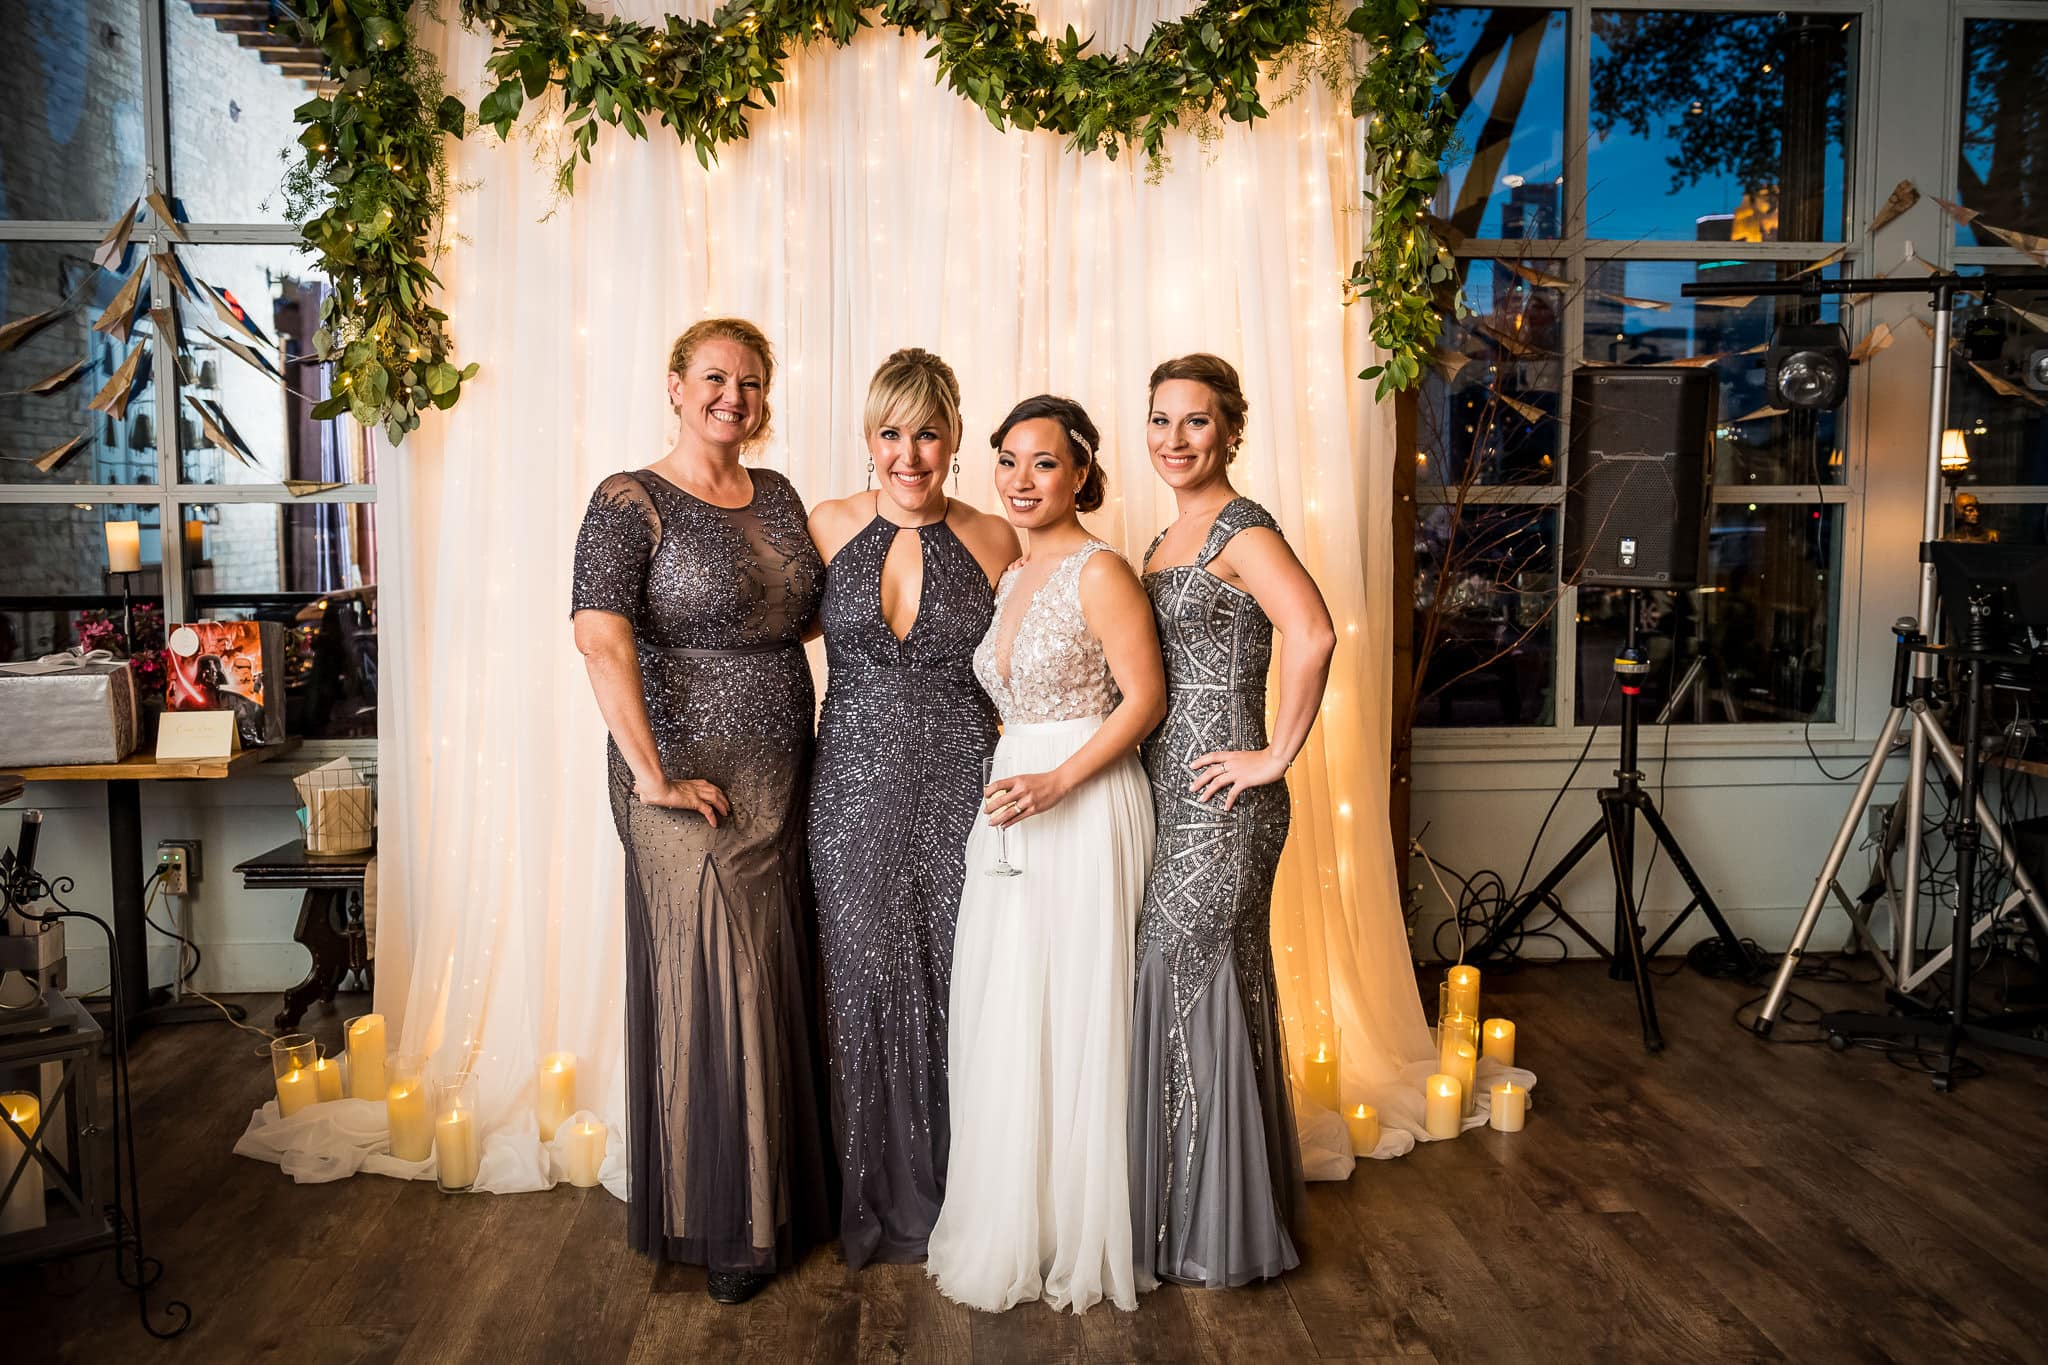 Aster Cafe Wedding Photos Alter Shot with Bridesmaids